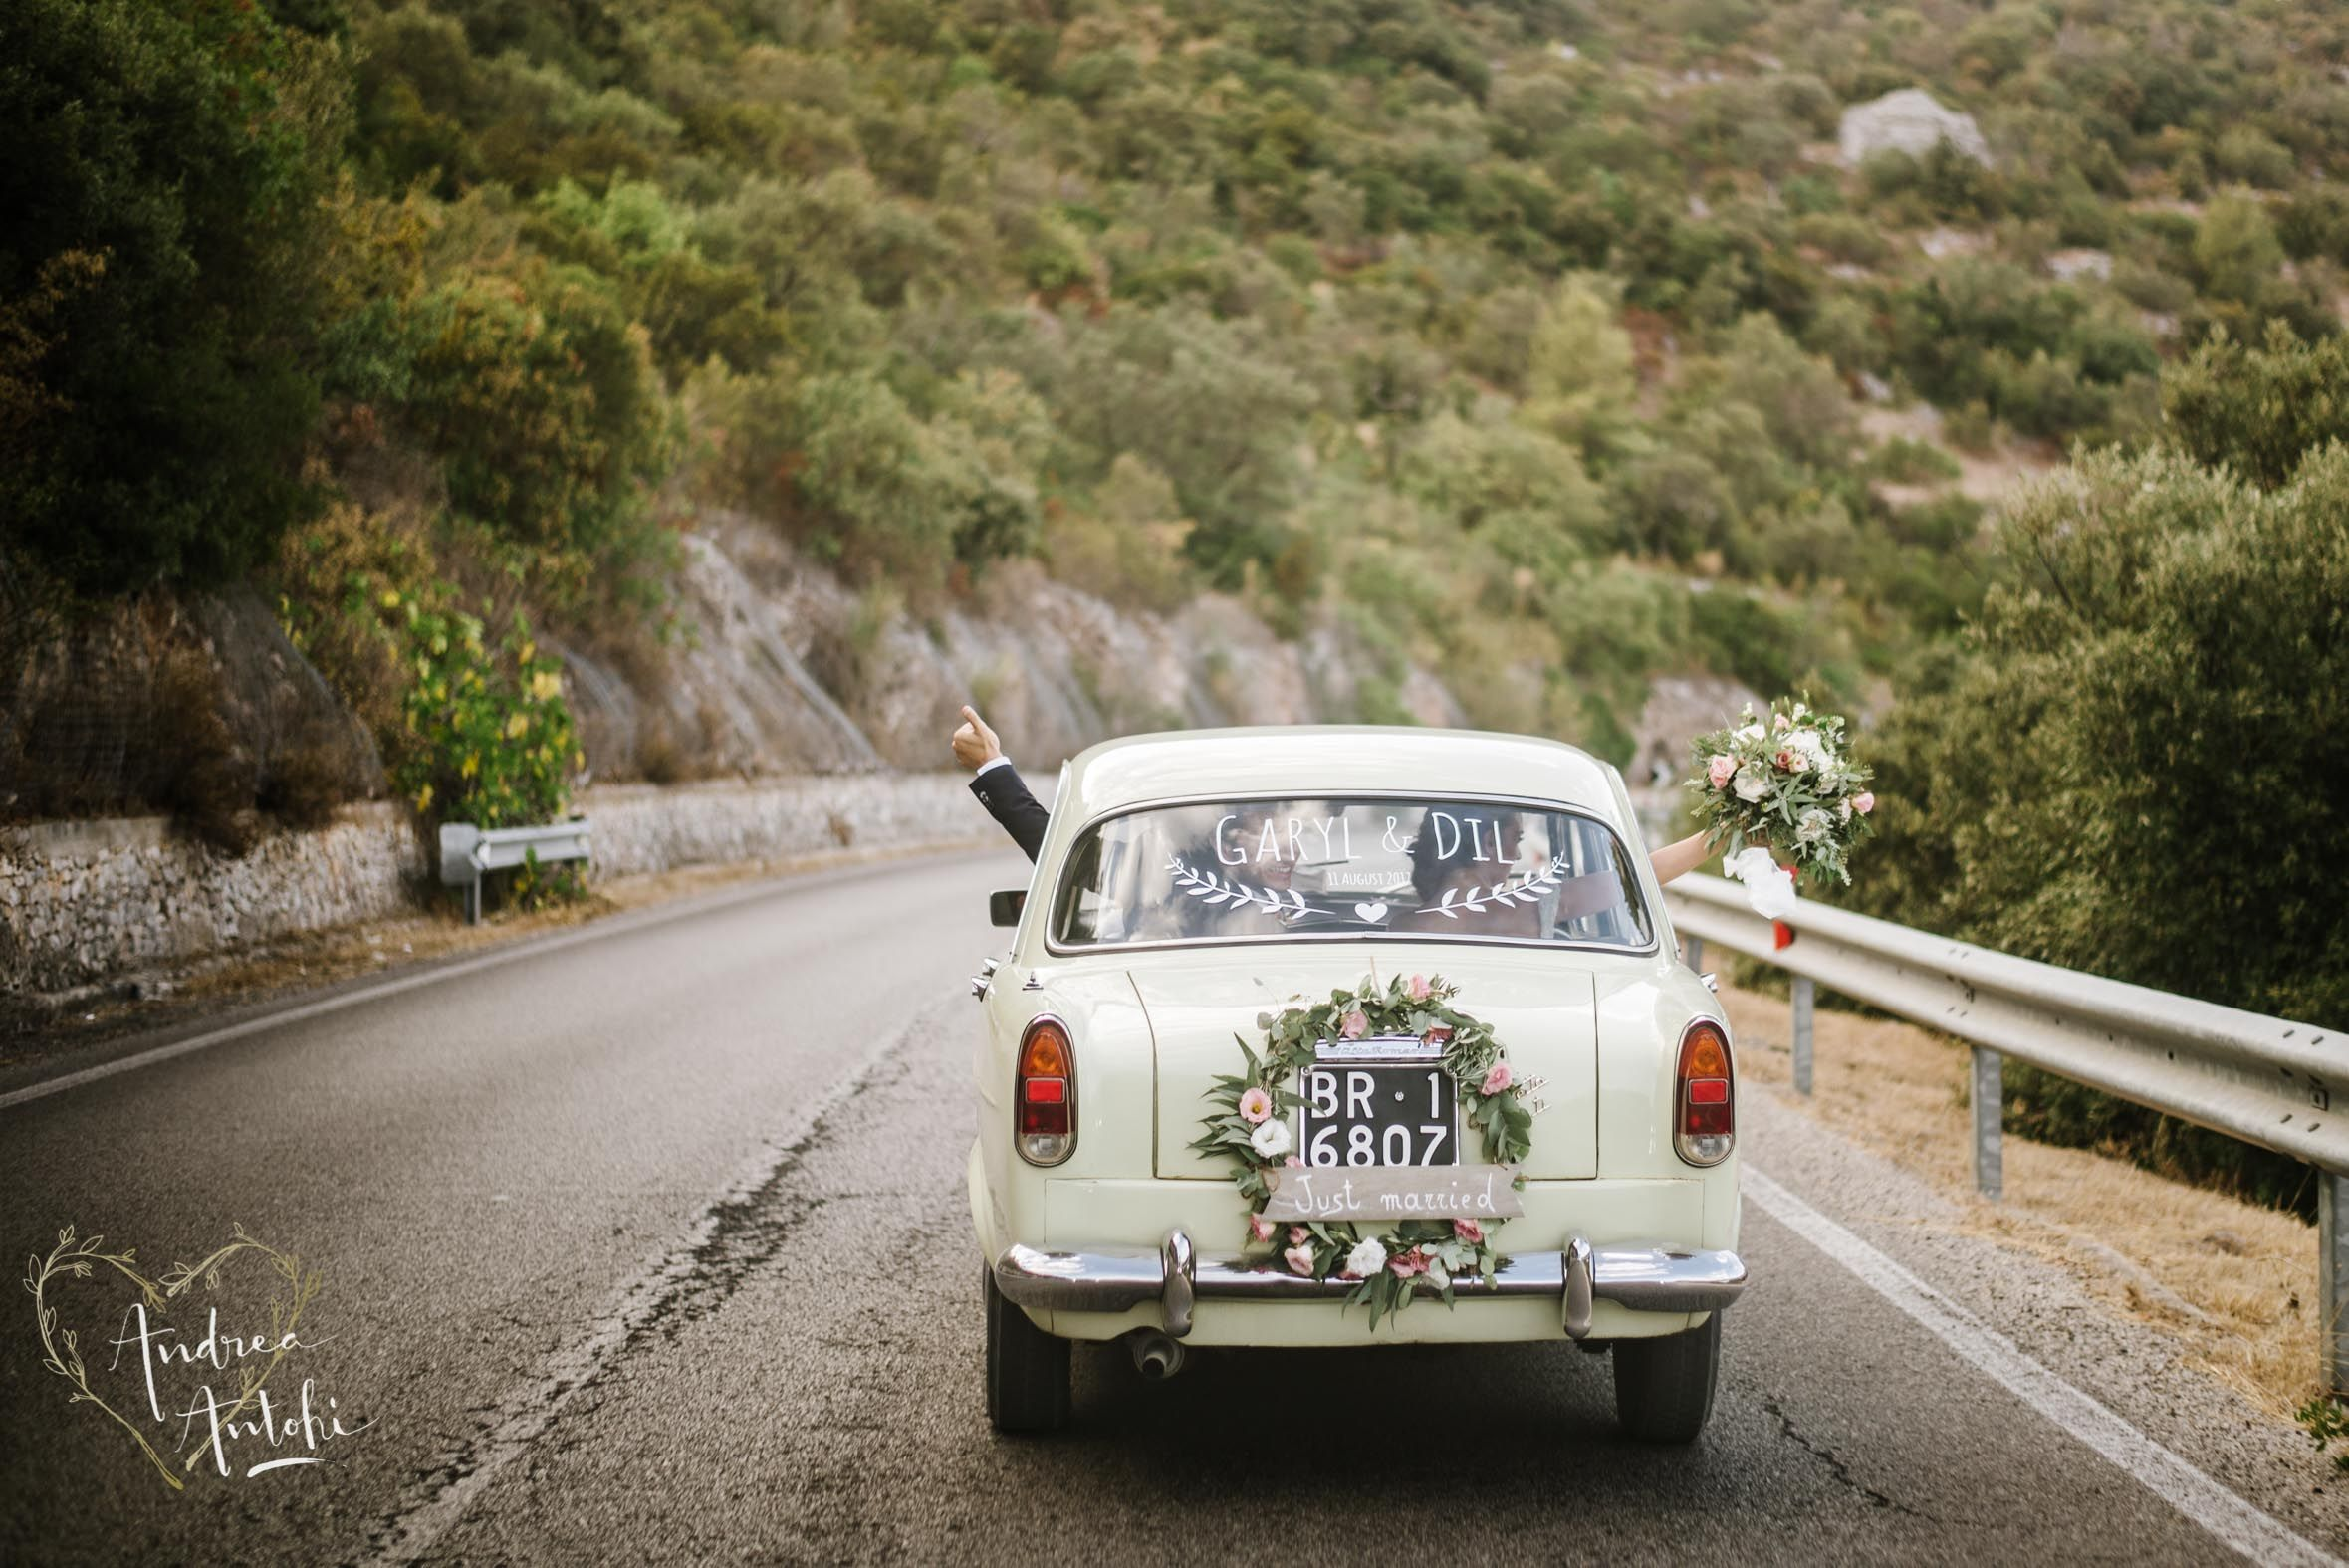 Coprisedie Amazon ~ 11 best country wedding apulia italy images on pinterest